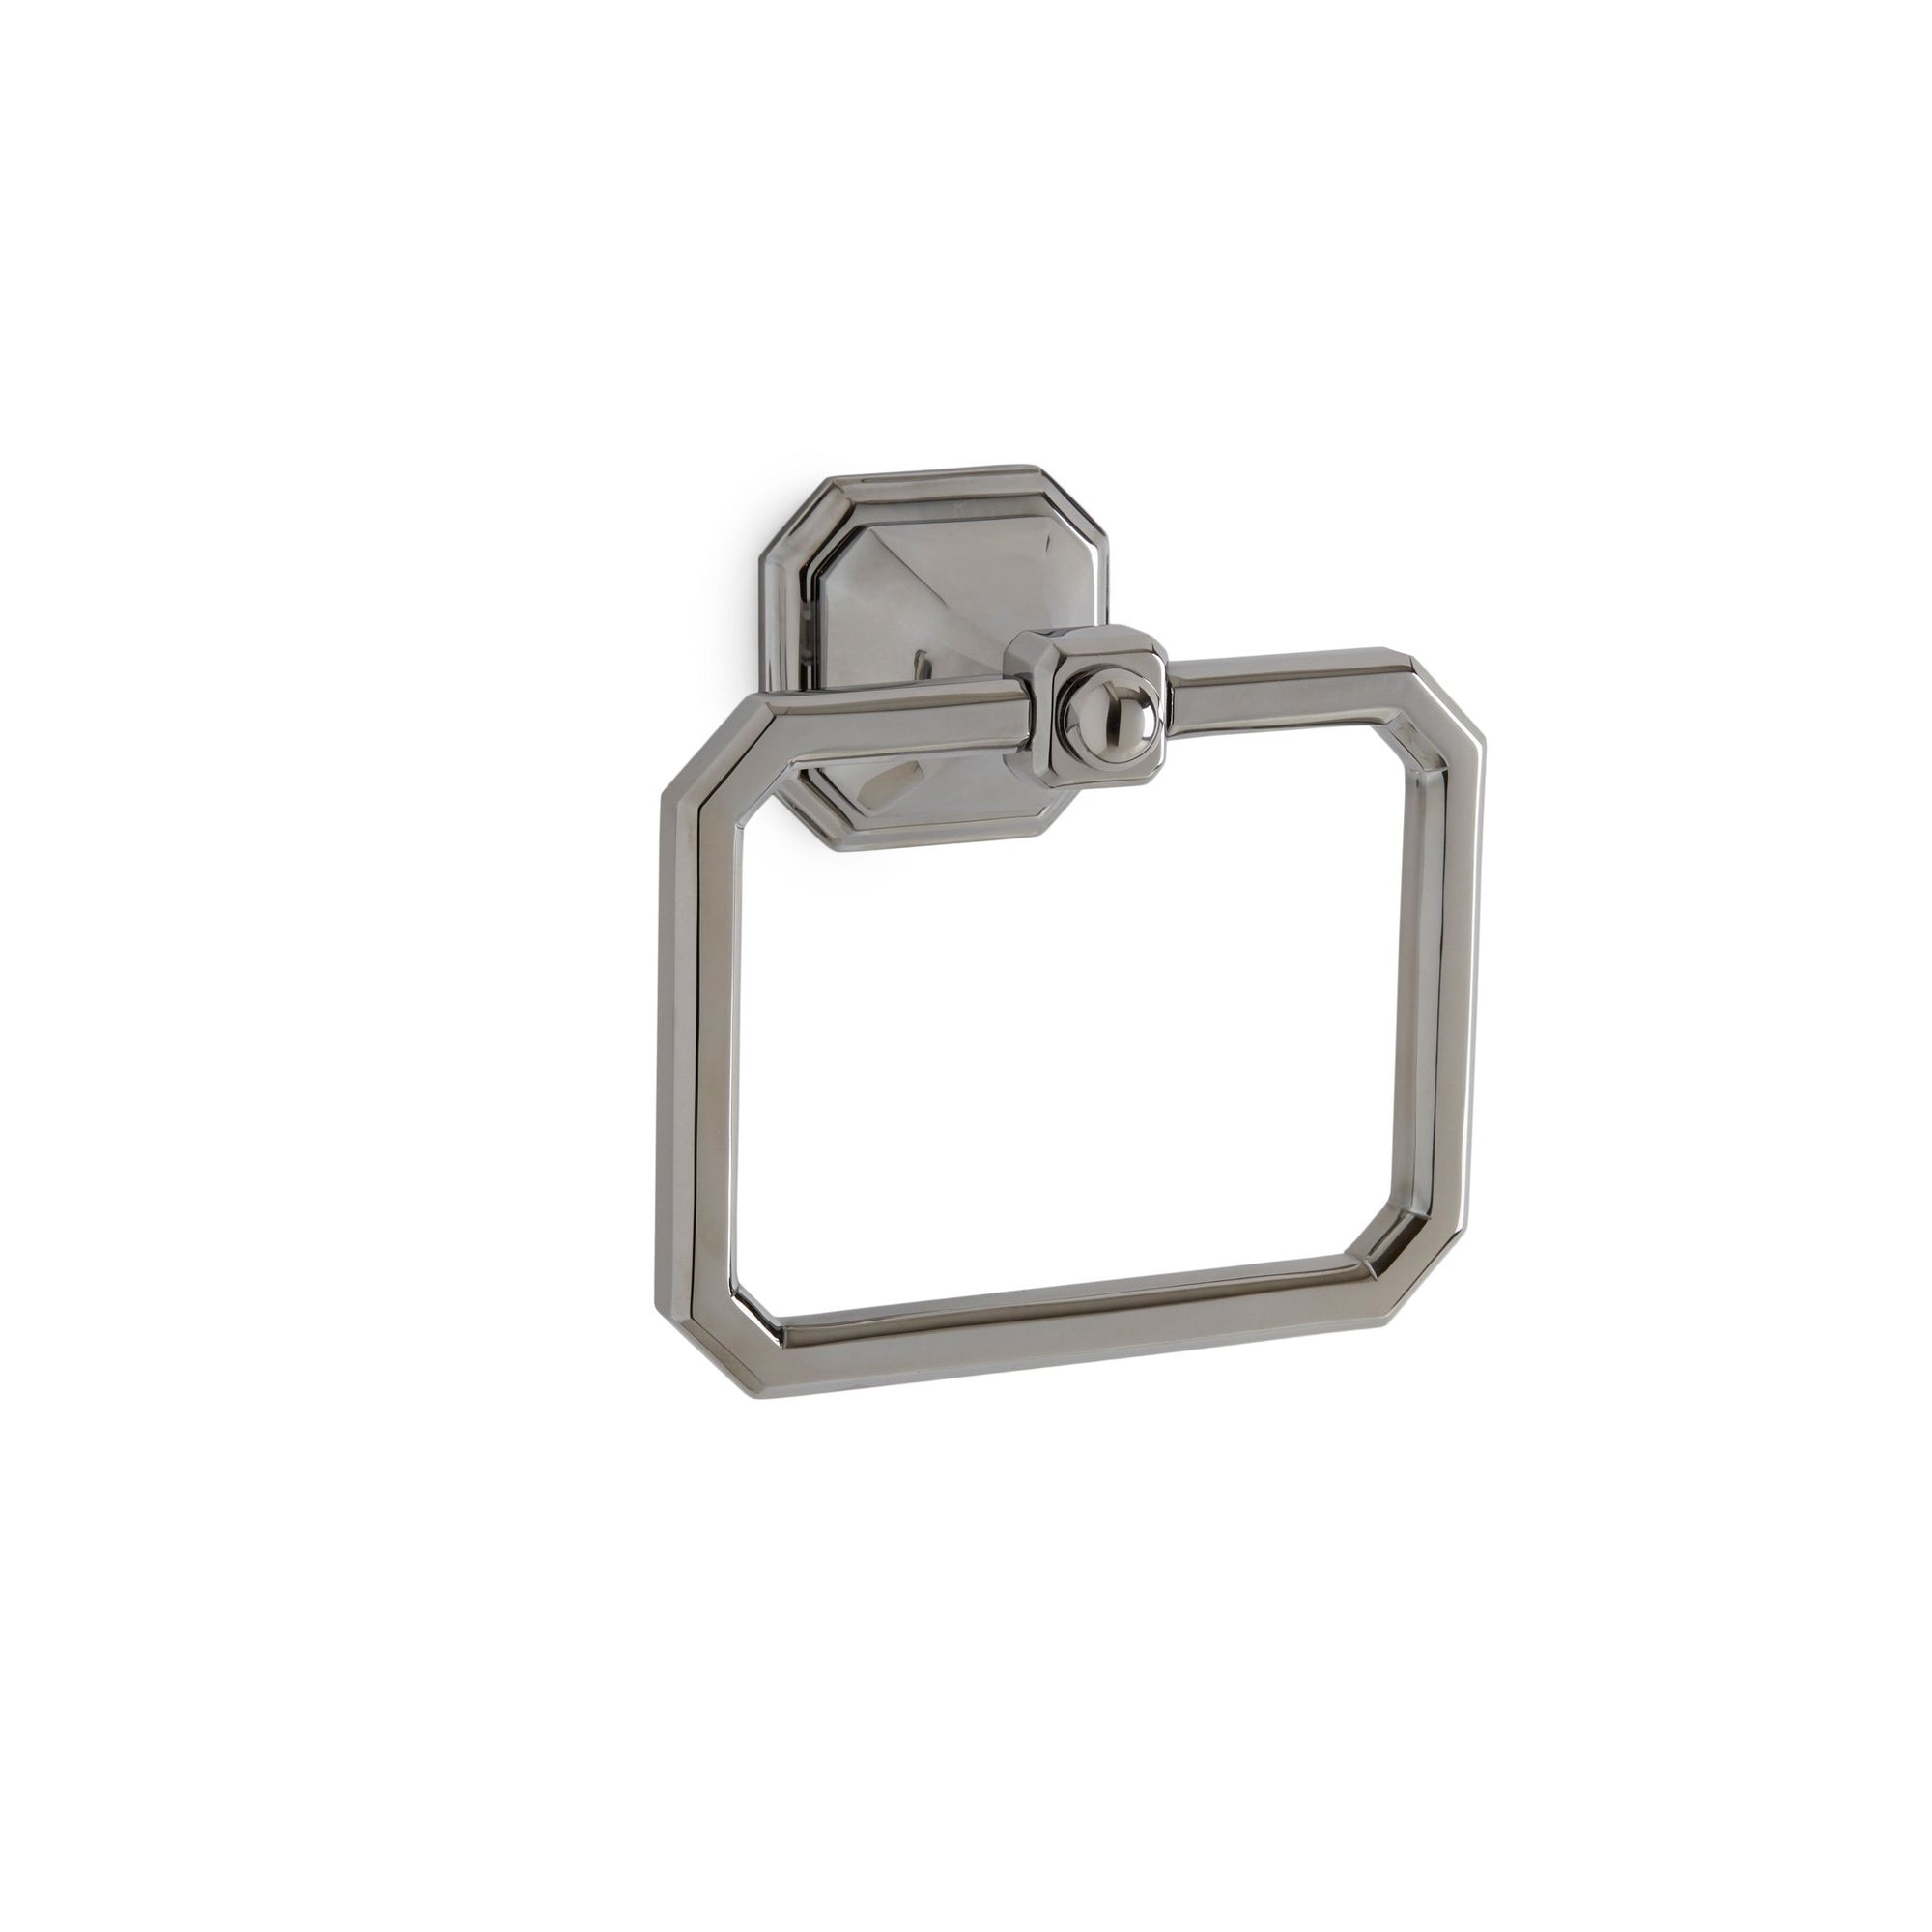 3418-CP Sherle Wagner International Harrison Crystal Towel Ring in Polished Chrome metal finish